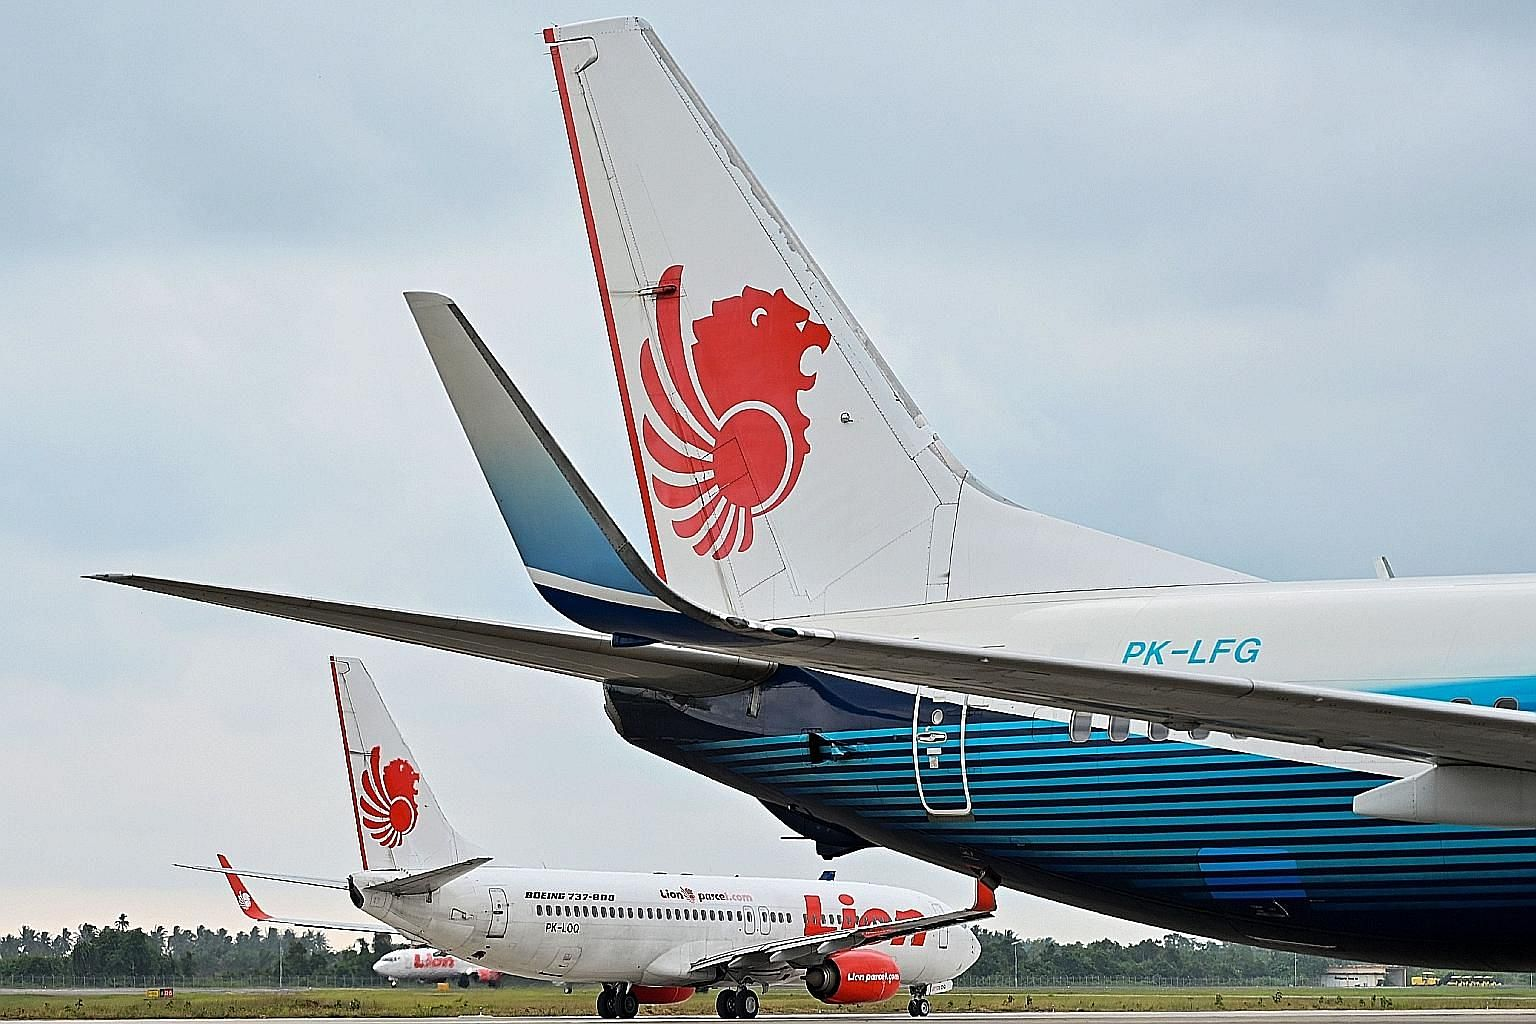 Lion Air could raise as much as US$1 billion (S$1.4 billion) in the IPO, reported Bloomberg News. The move comes close to the first anniversary of a crash and after the airline suffered a recent customer data leak.